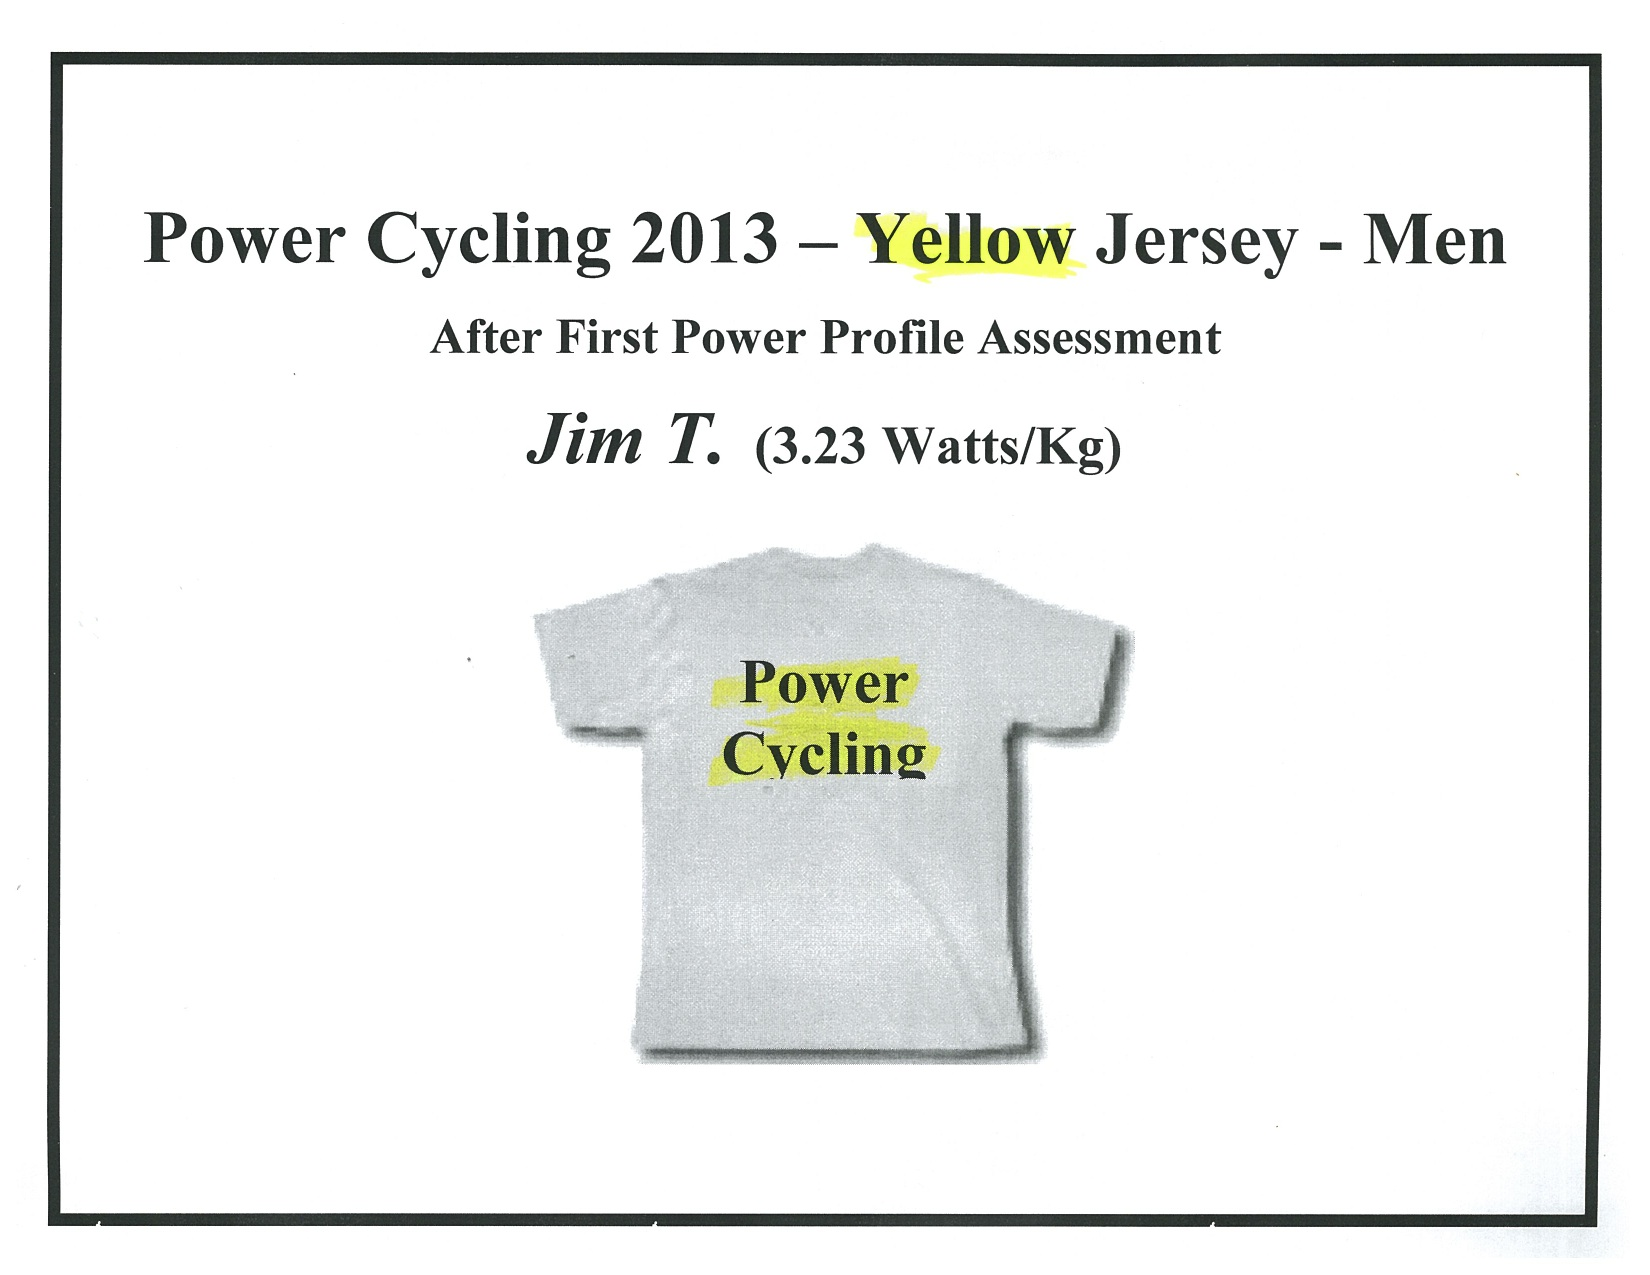 FTP test 1 yellow Jersey